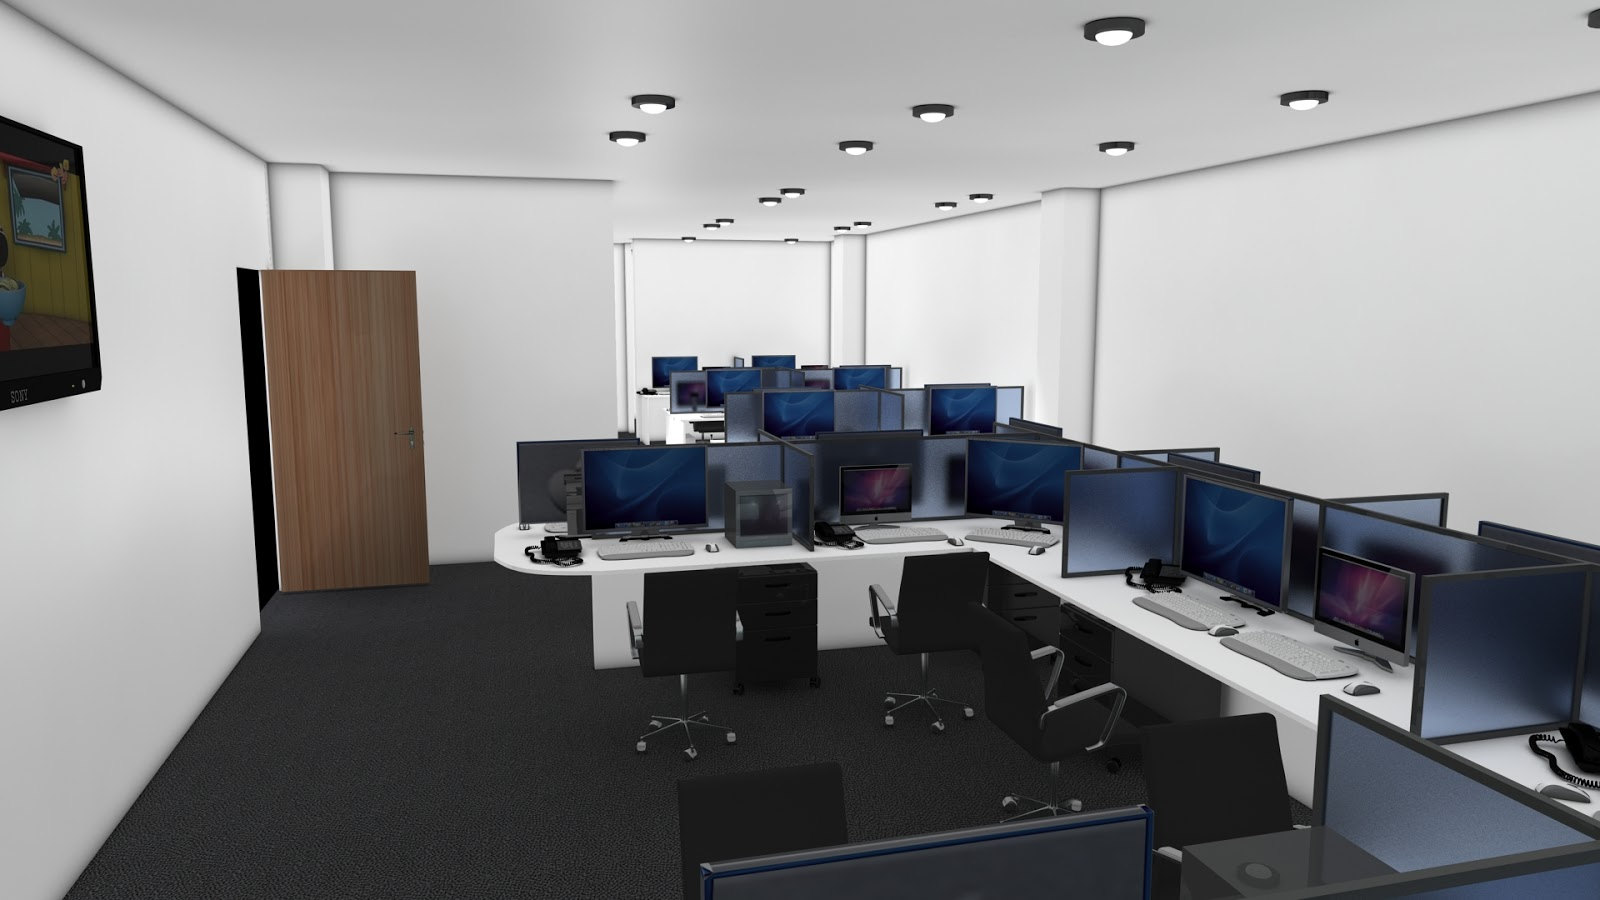 Office interior design 3d max